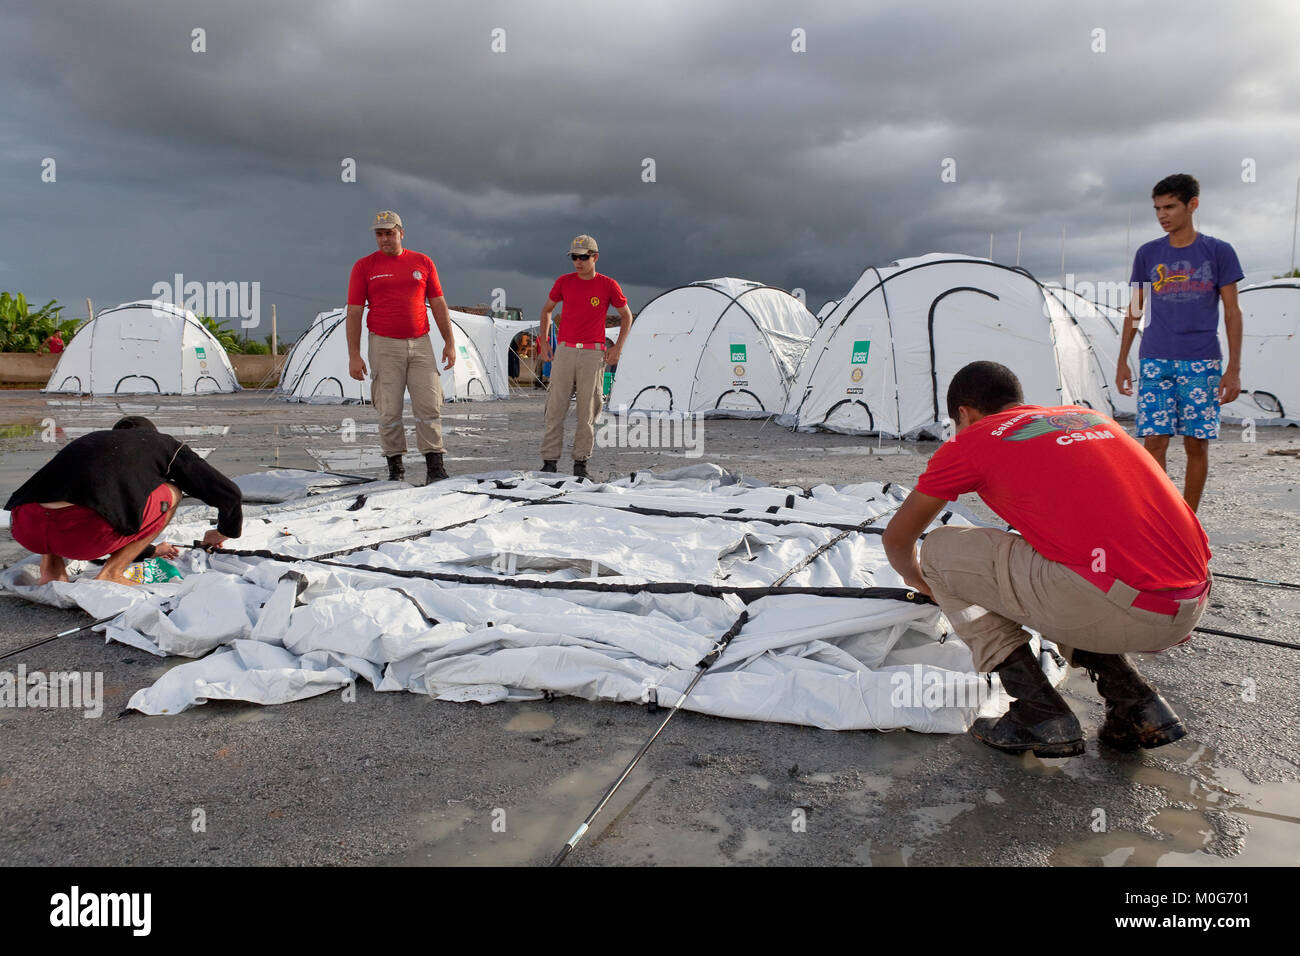 Members of Alegoas Fire Brigade assist in setting up tnets at Uniao Dos Palmares - Stock Image